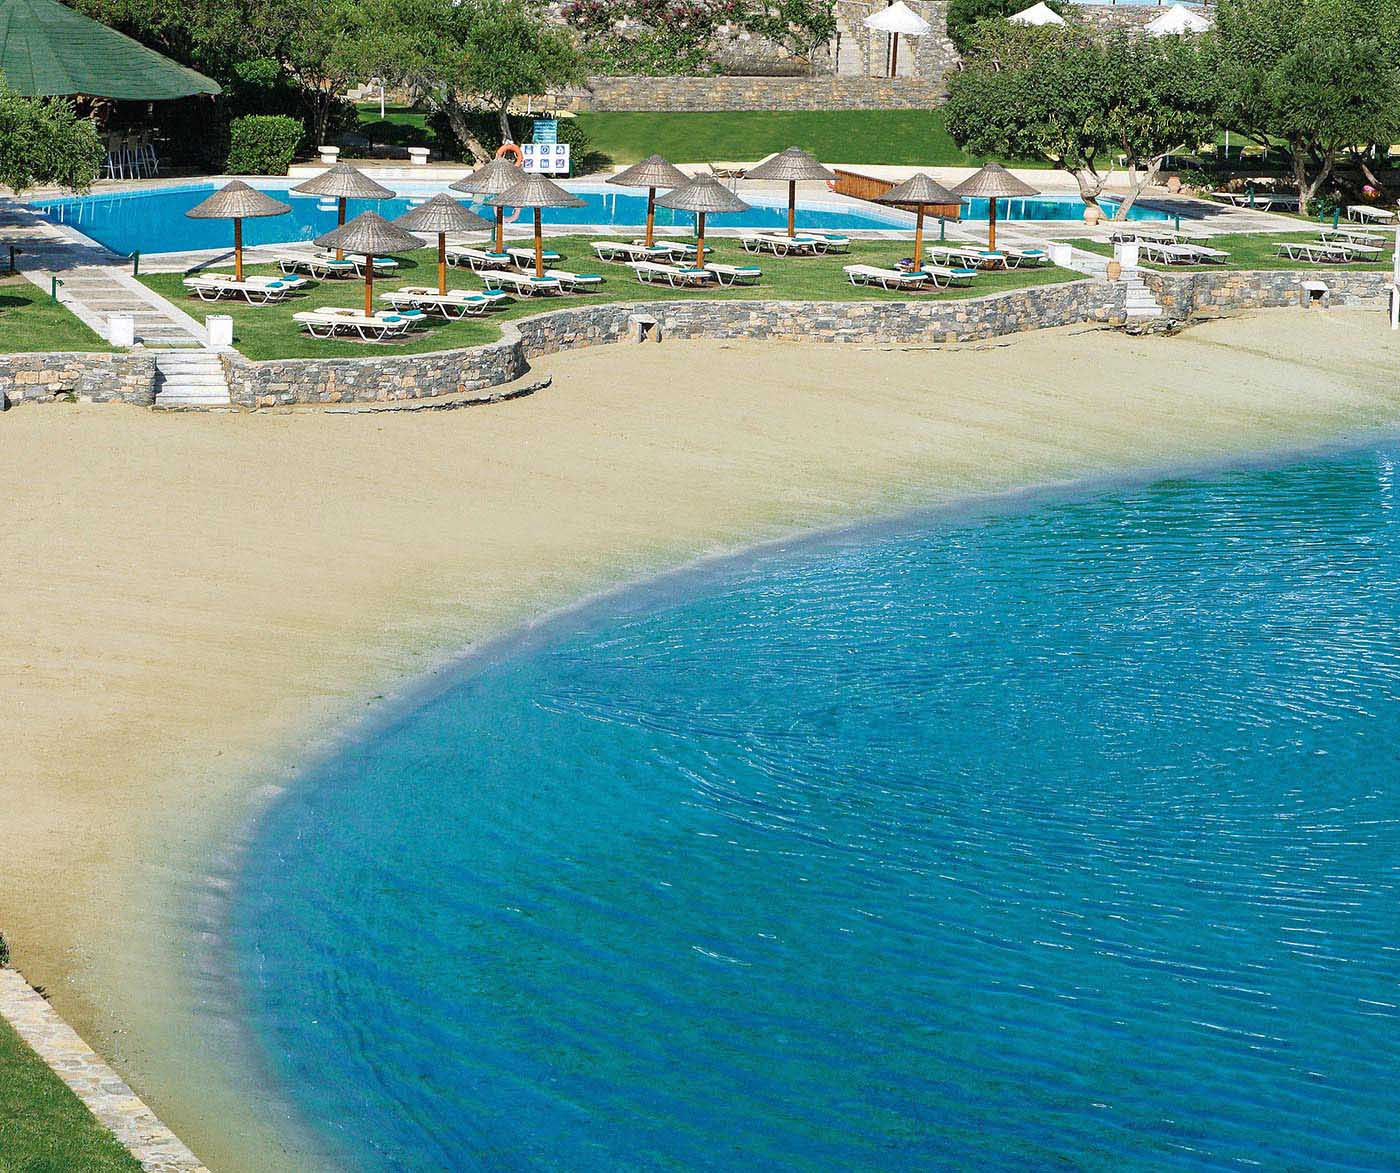 Plakias hotels & resorts, 50% discount for early bookings, Plakias, Rethymnon, Crete, Greece